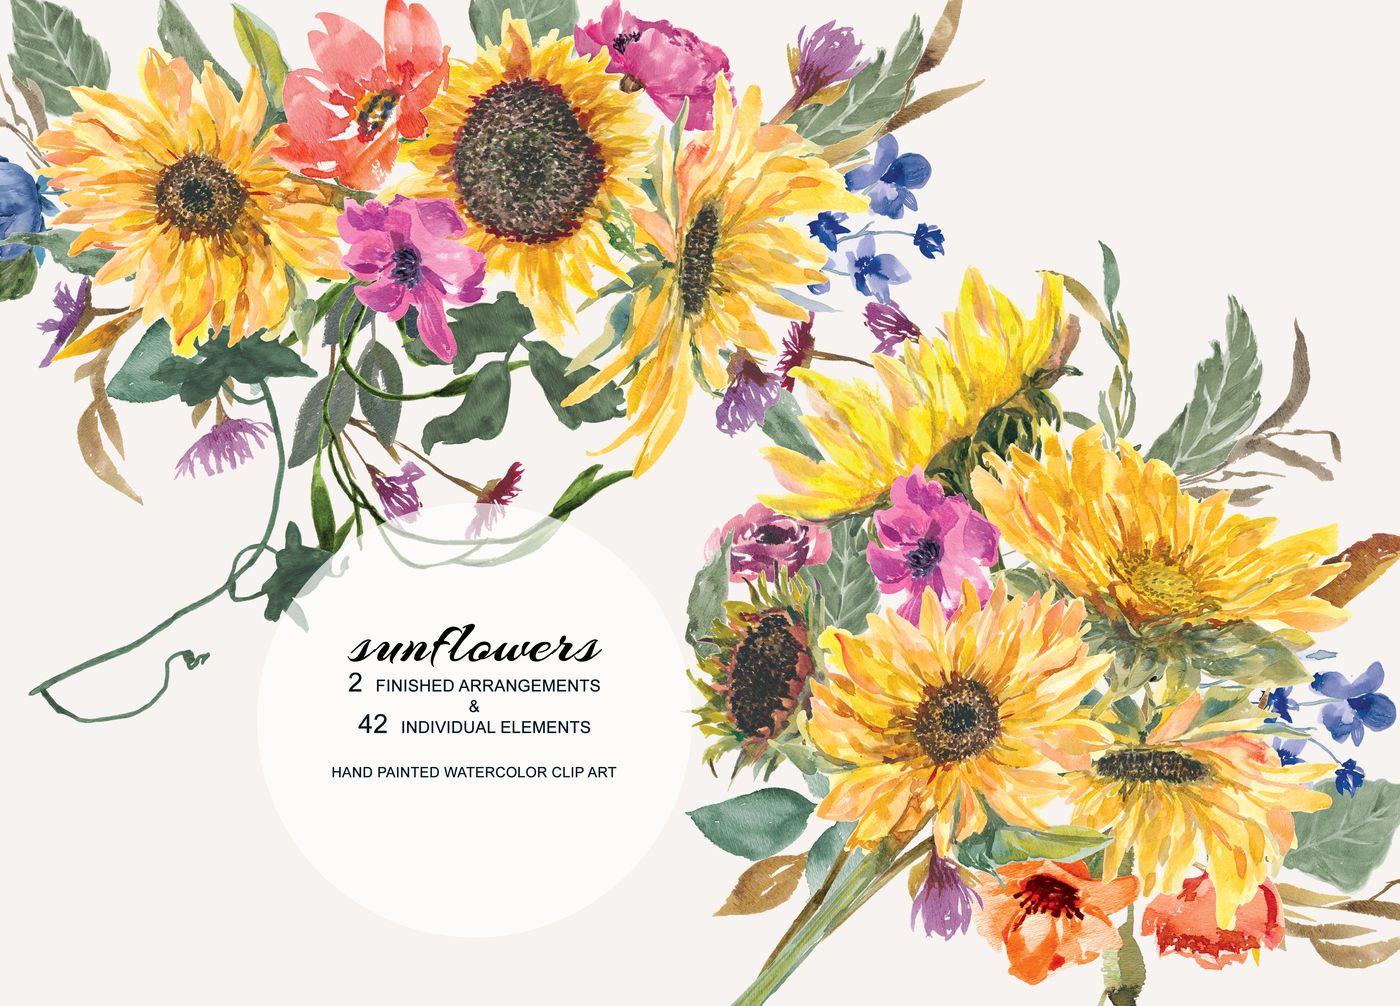 Hand Painted Watercolor Sunflower Clipart Arrangements ...